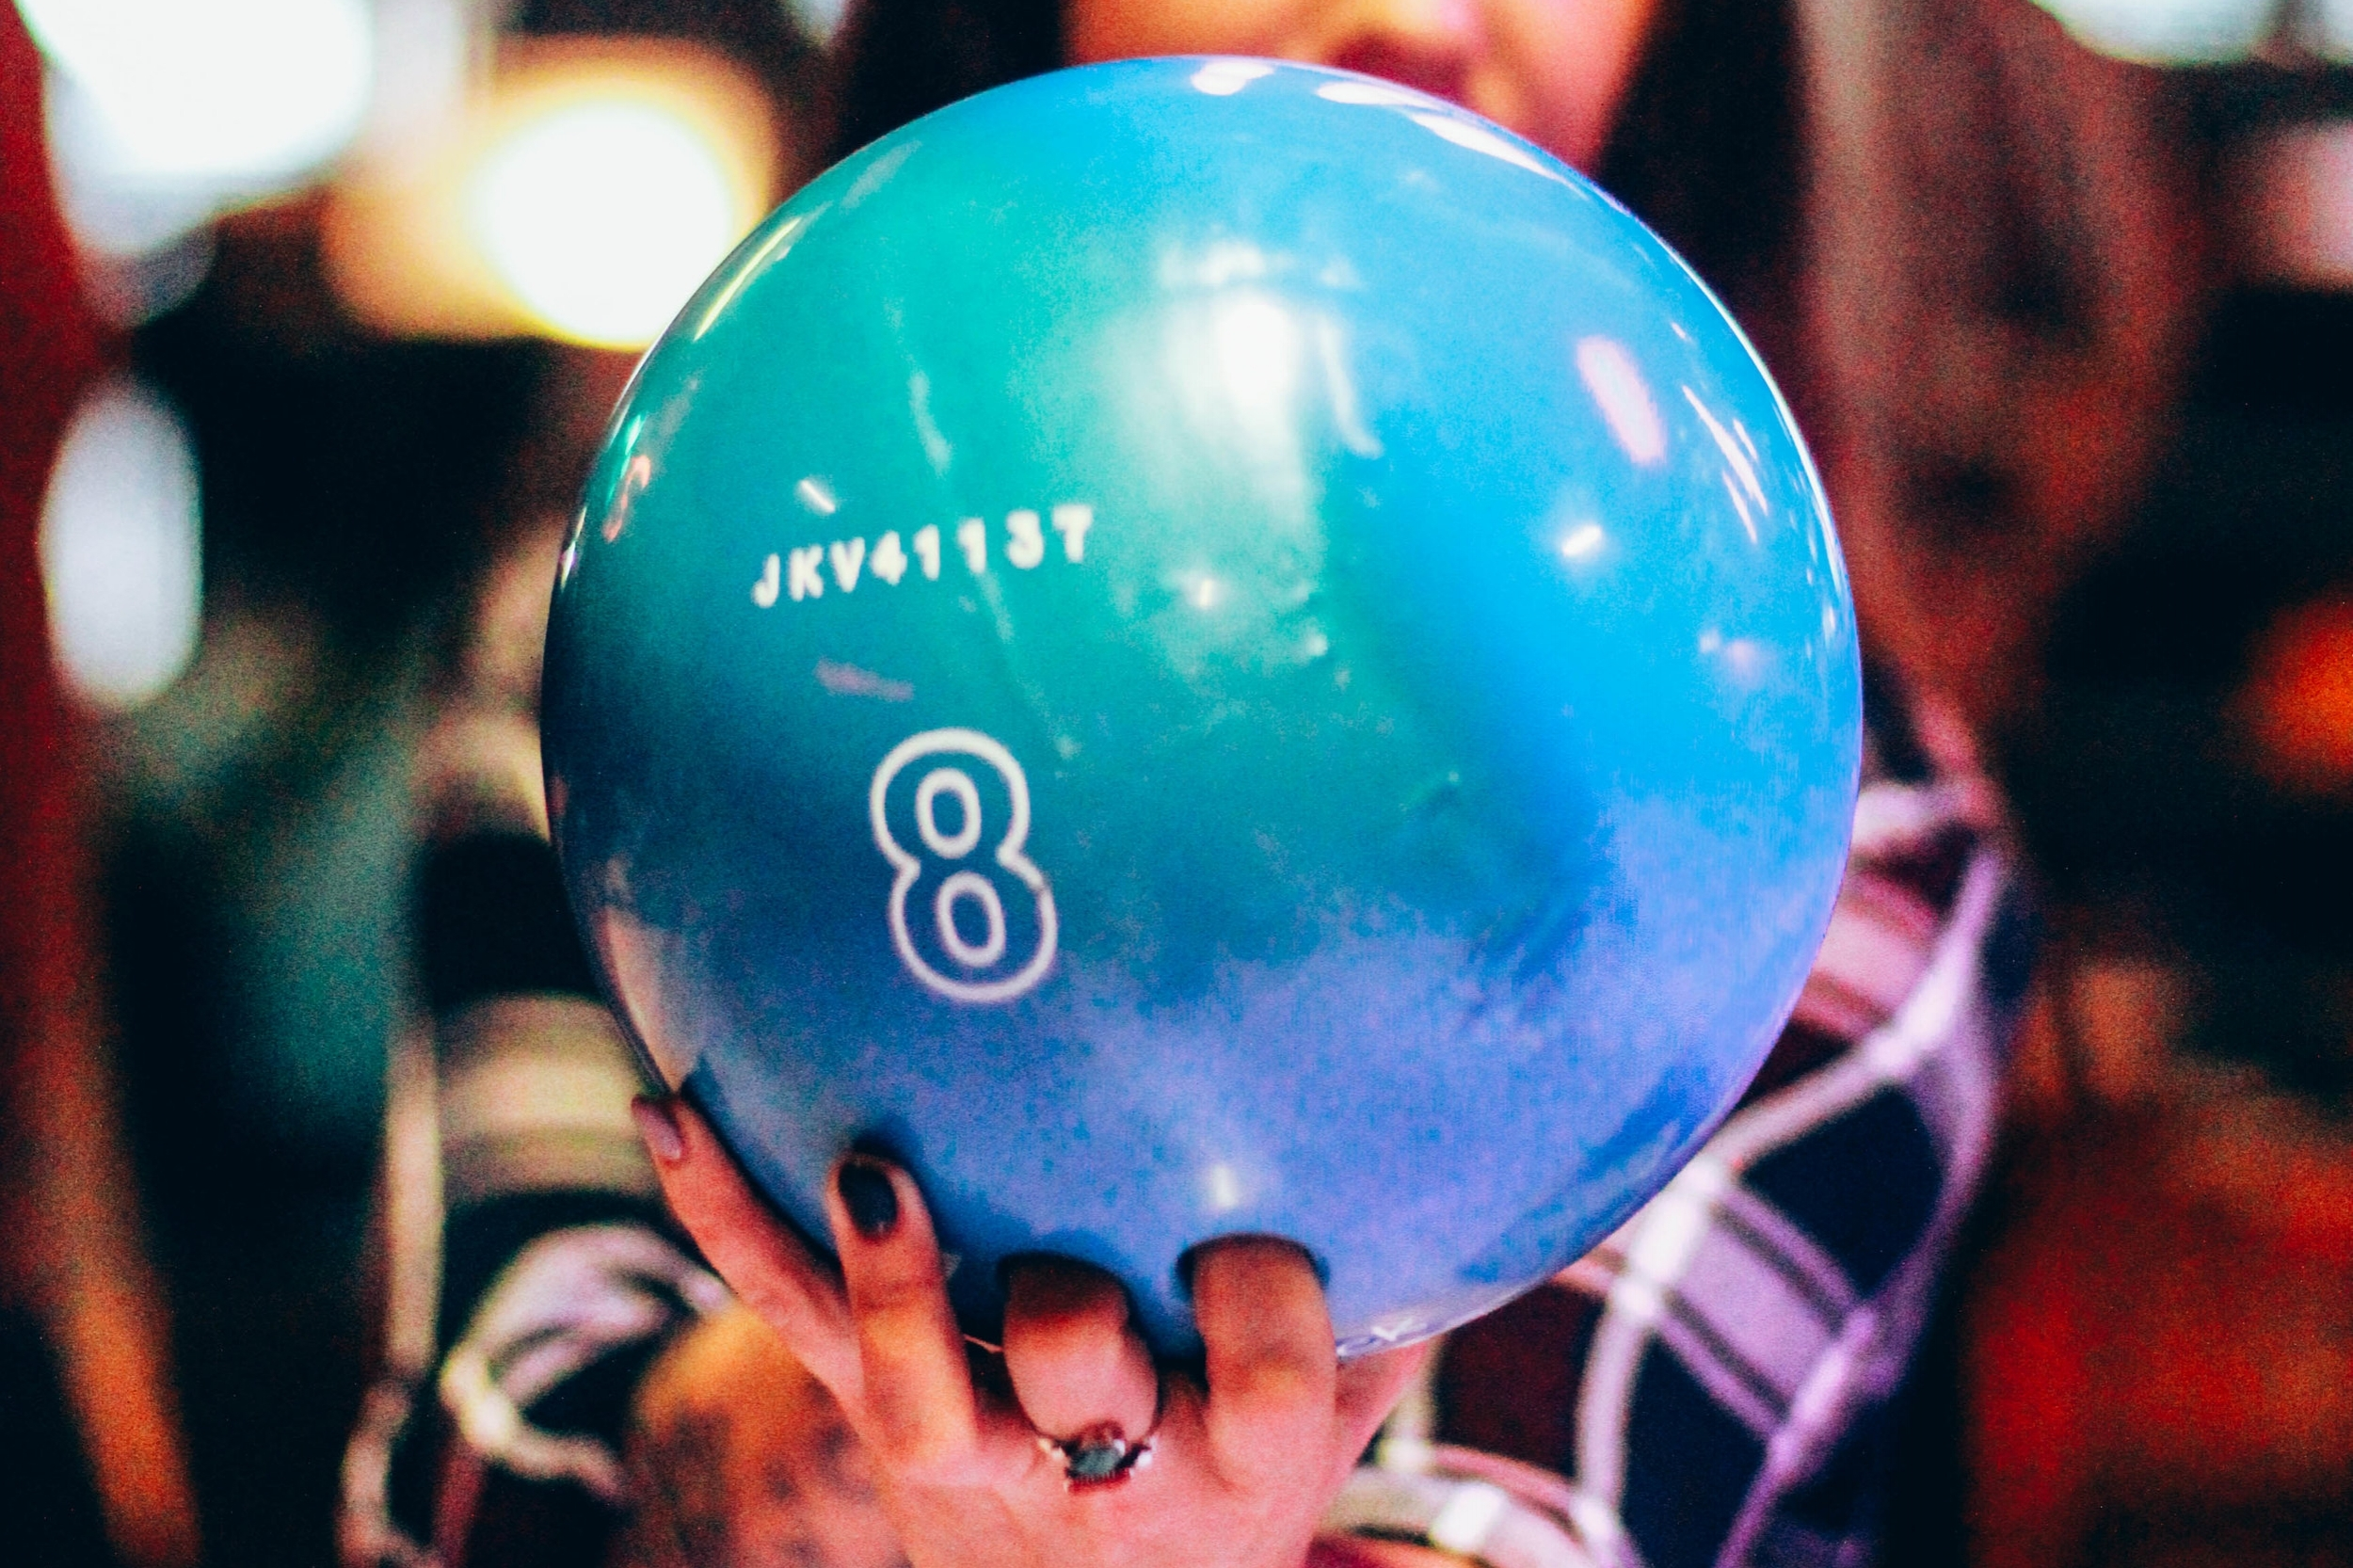 BOWLING: LETS ROLL - 12 boutique lanes in the heart of SE Portland. Reserve a couple lanes for your next party or stop in and bowl 7 days a week. CLICK TO VIEW OUR BOWLING RATES